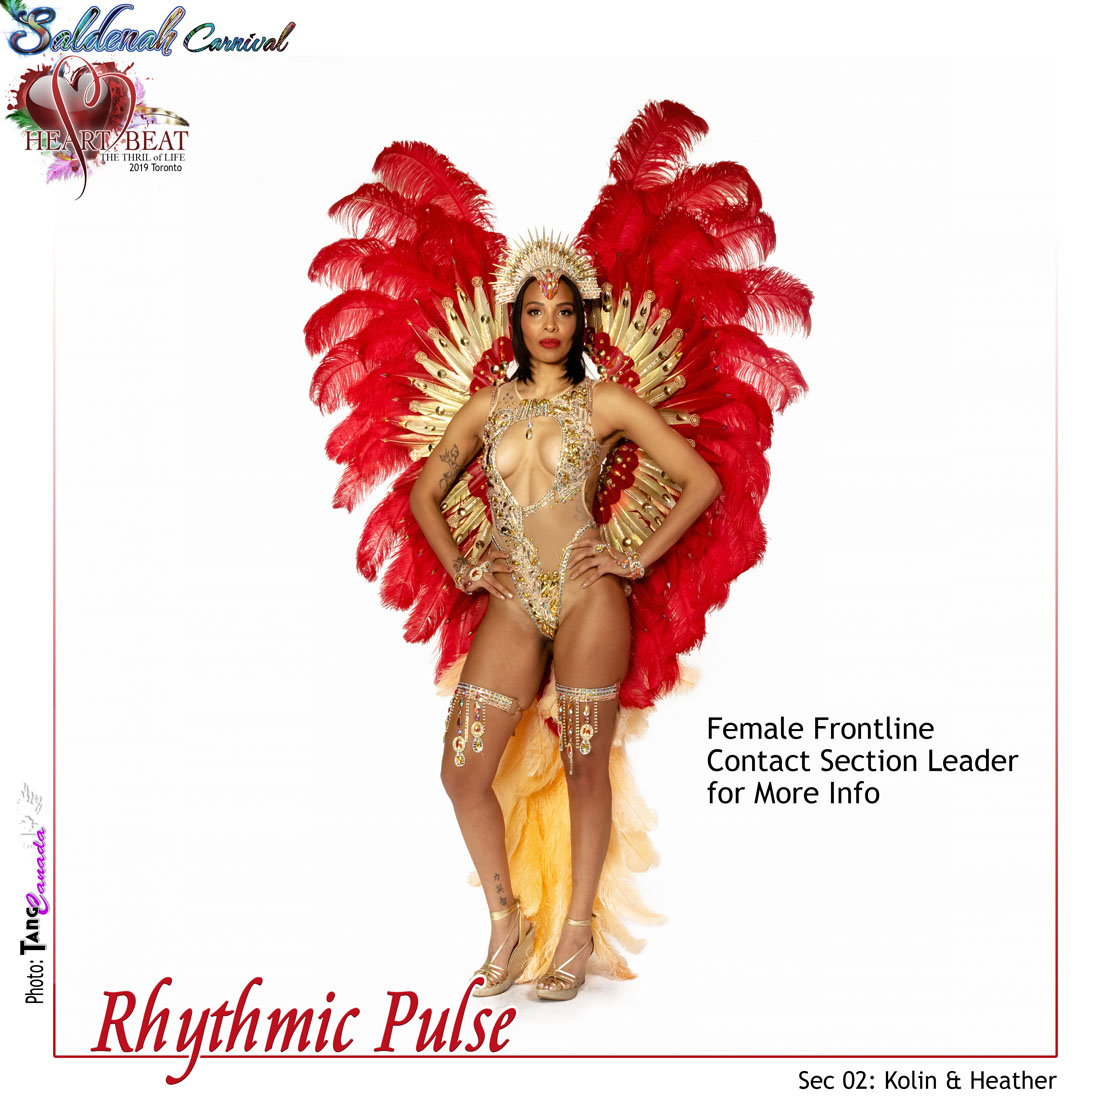 Saldenah Carnival Section 2 Rhythmic Pulse